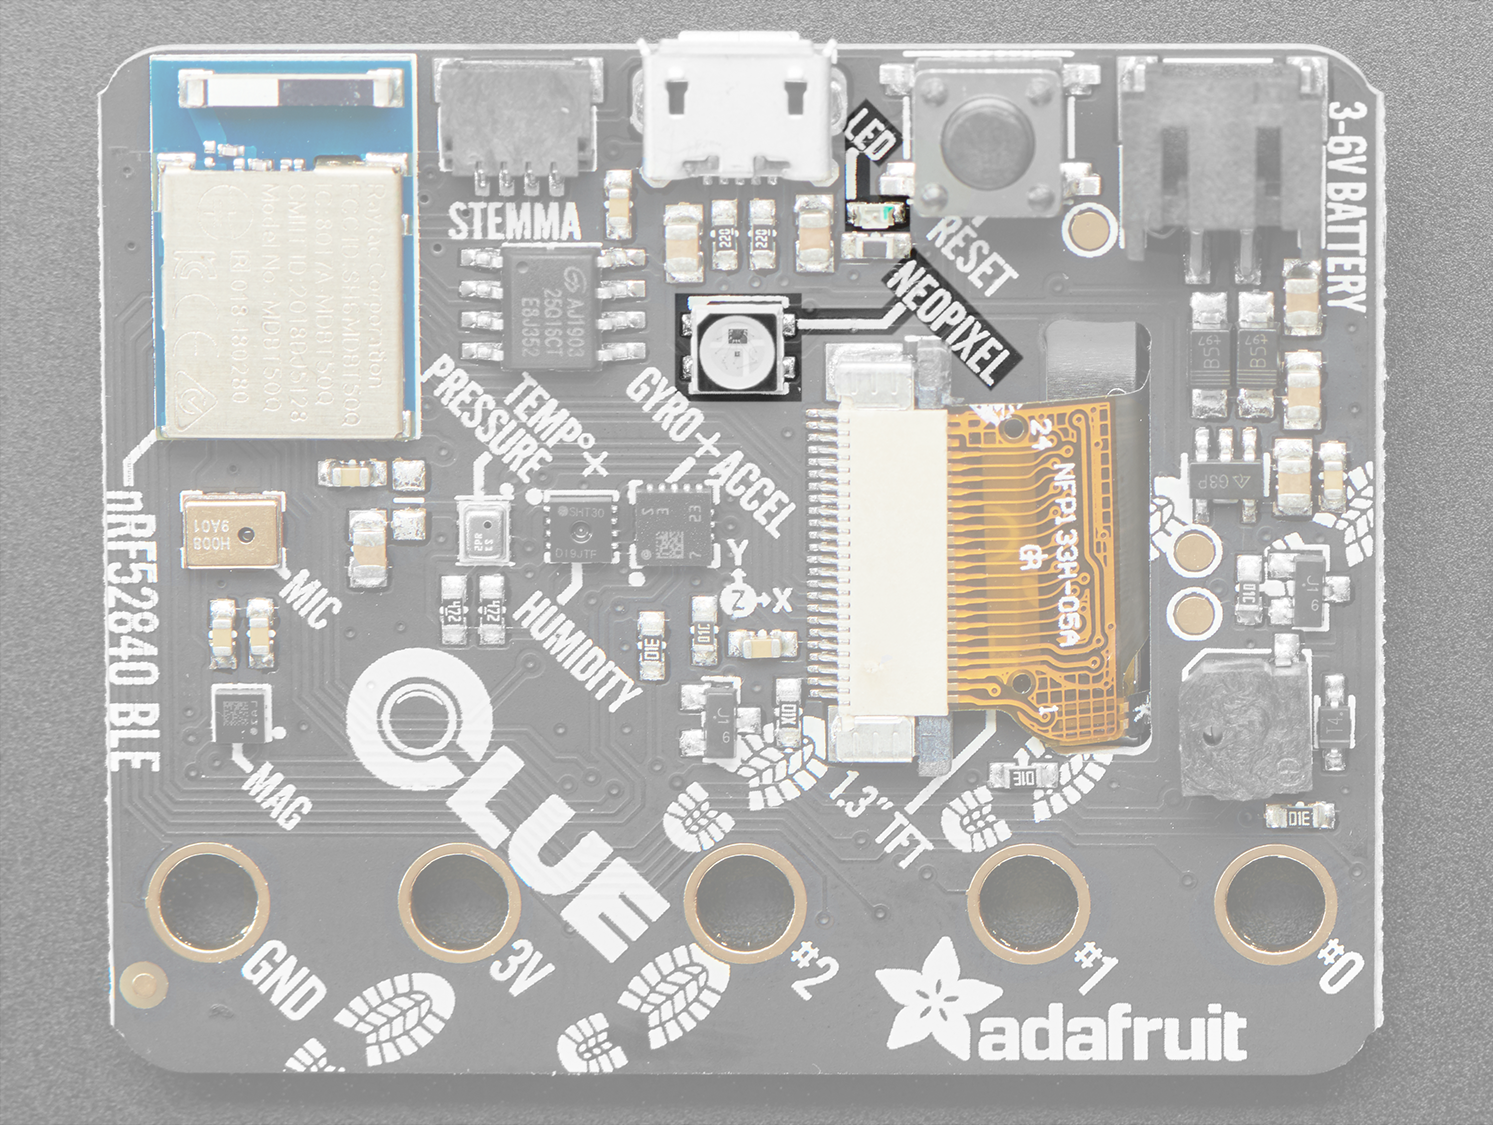 adafruit_products_Clue_pinouts_NeoPixel_status_LED.png